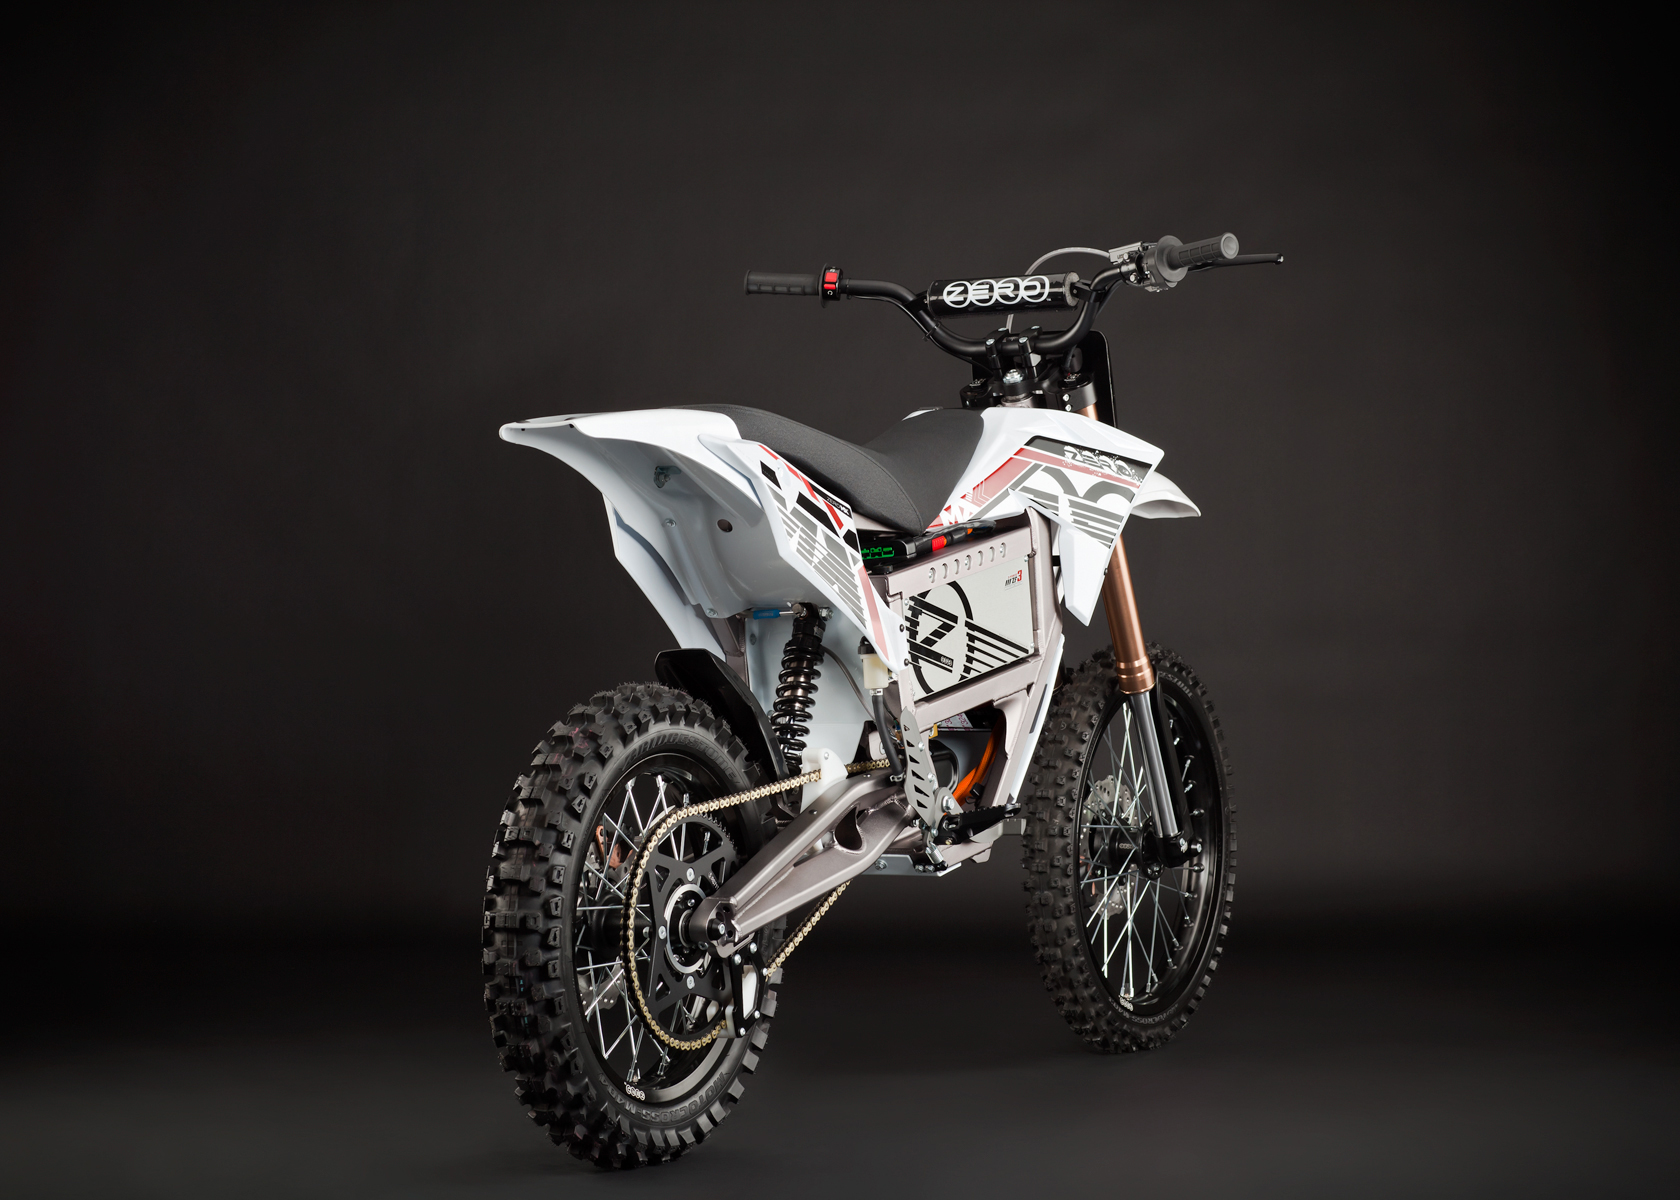 '.2012 Zero MX Electric Motorcycle: Angle Right, Rear View.'